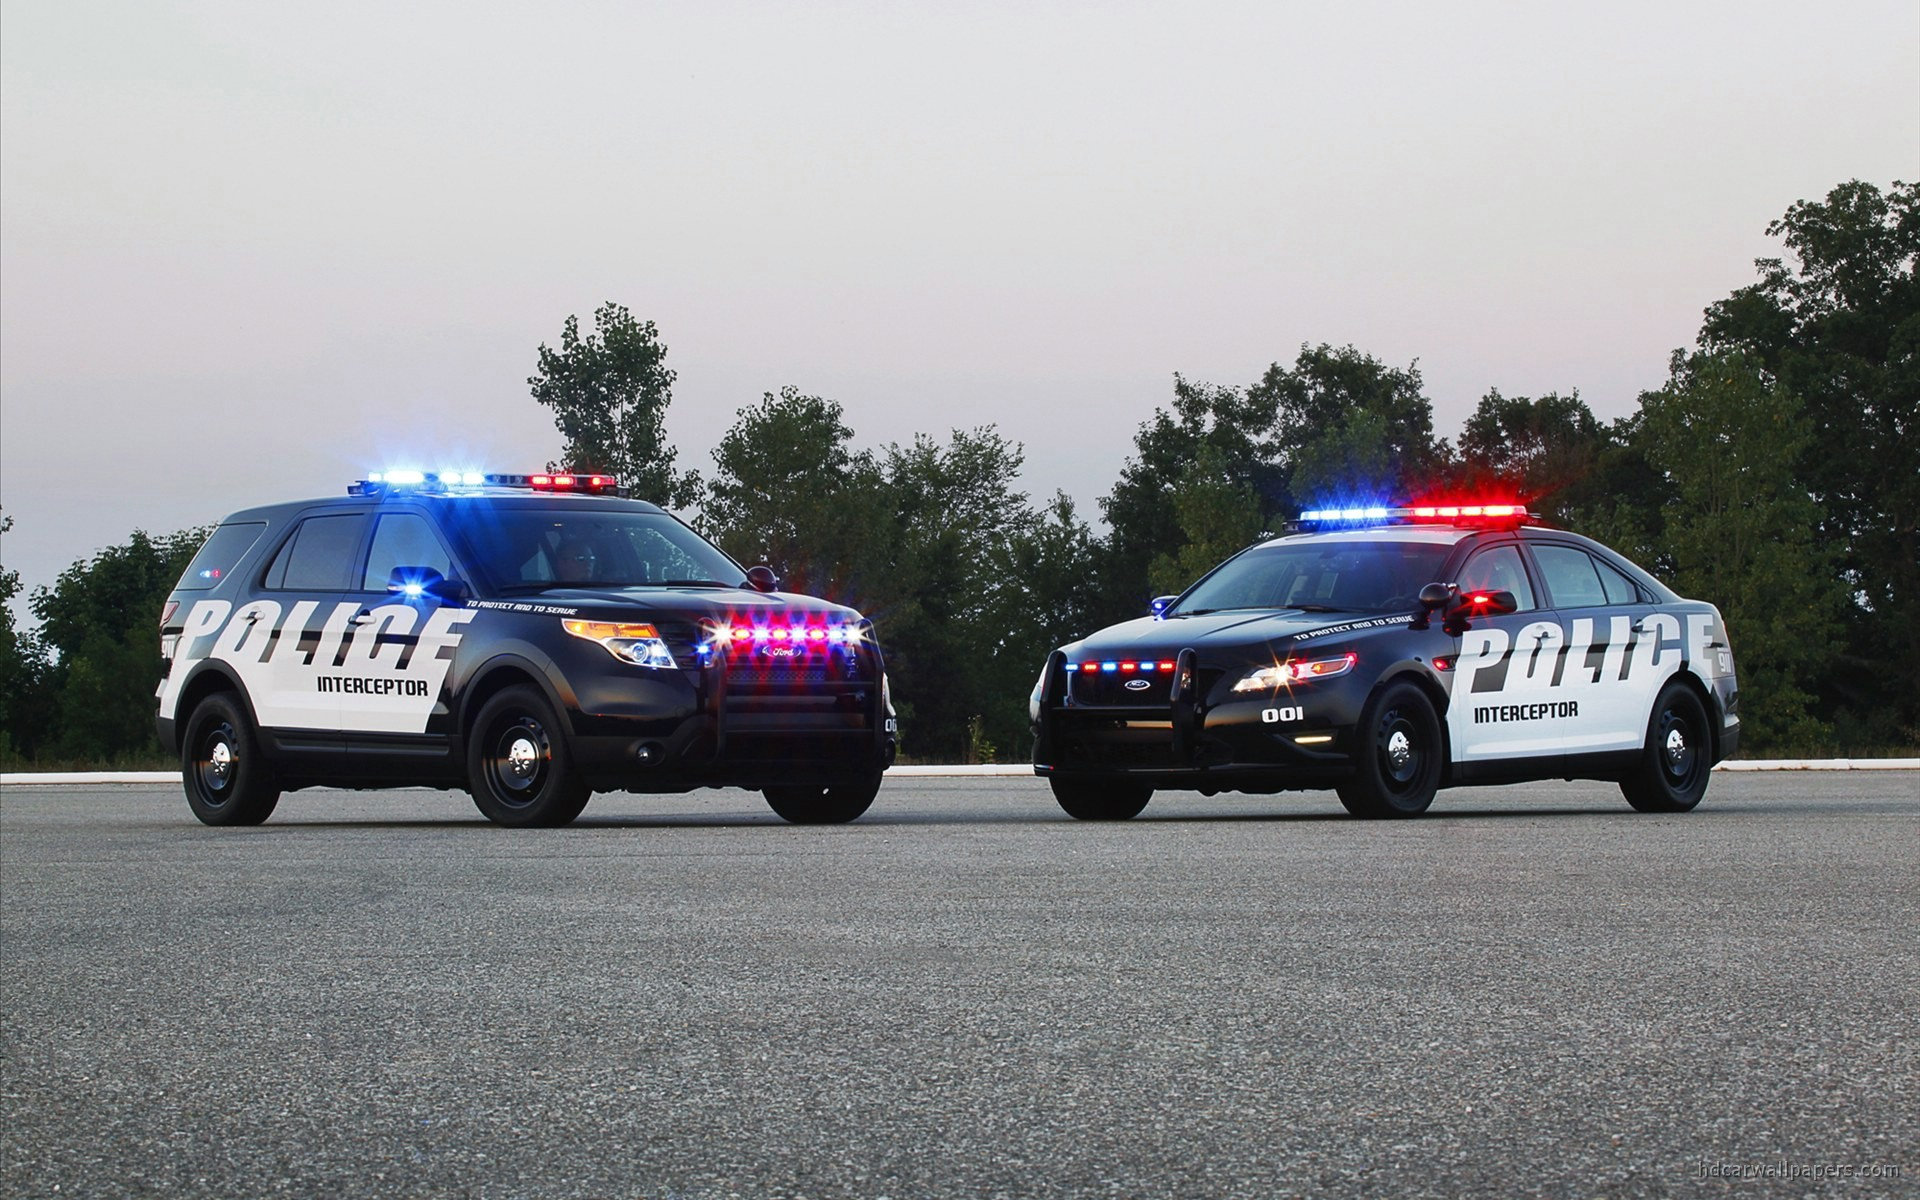 2011 Ford Police Interceptor SUV Wallpaper | HD Car Wallpapers | ID #1637